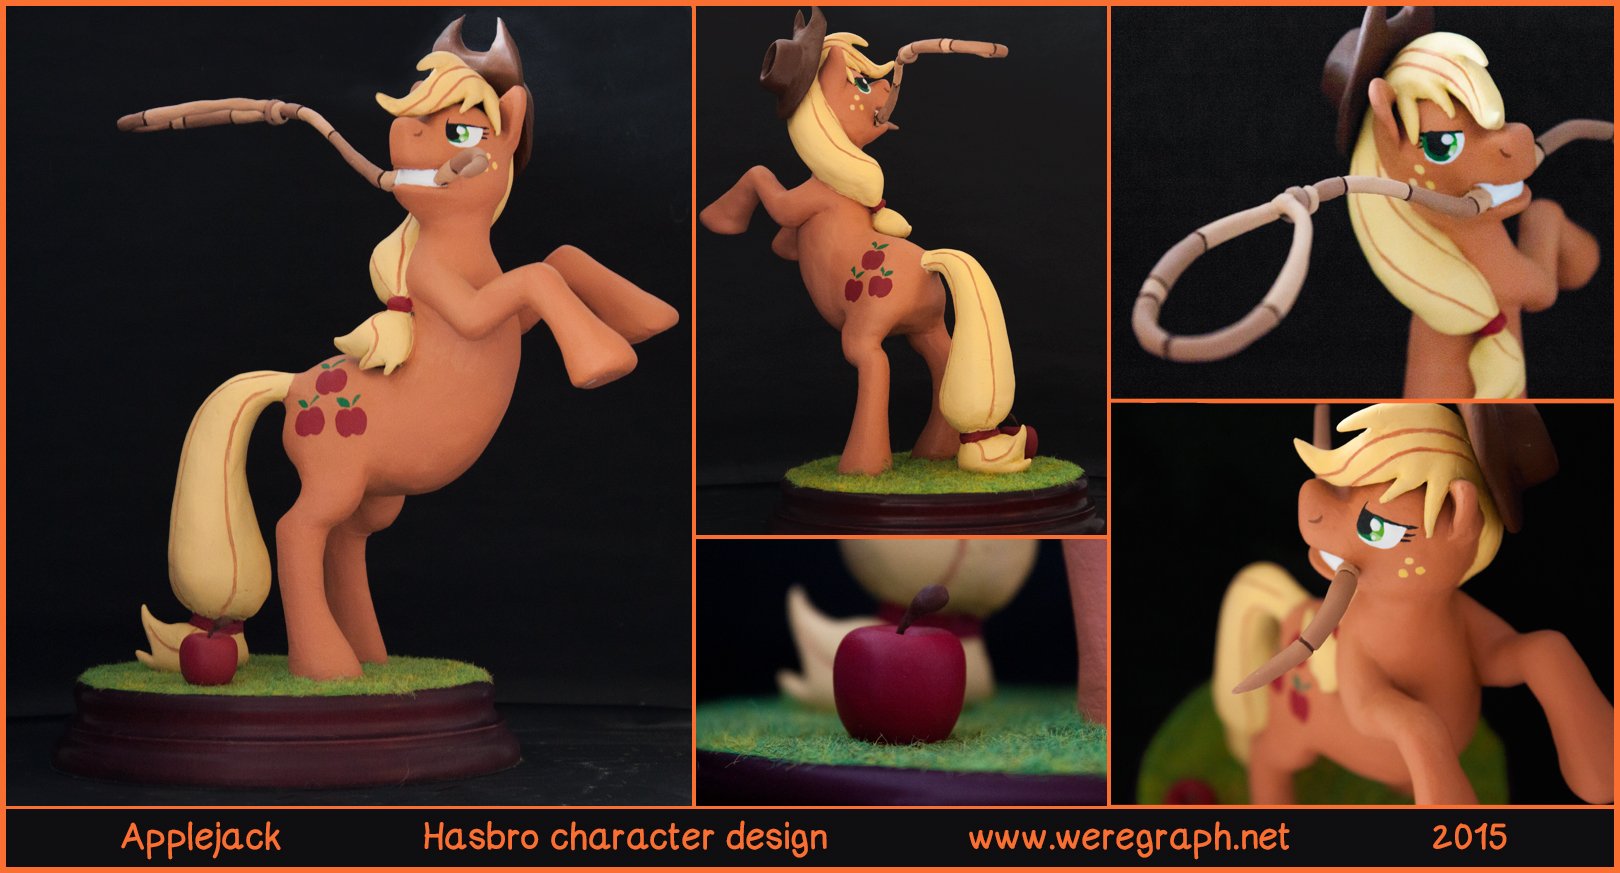 Réalisation pour l'anniversaire de mon beau-frère qui est un fan de AppleJack, personnage issu de l'univers de ''My Little Pony, Frienship Is Magic''.